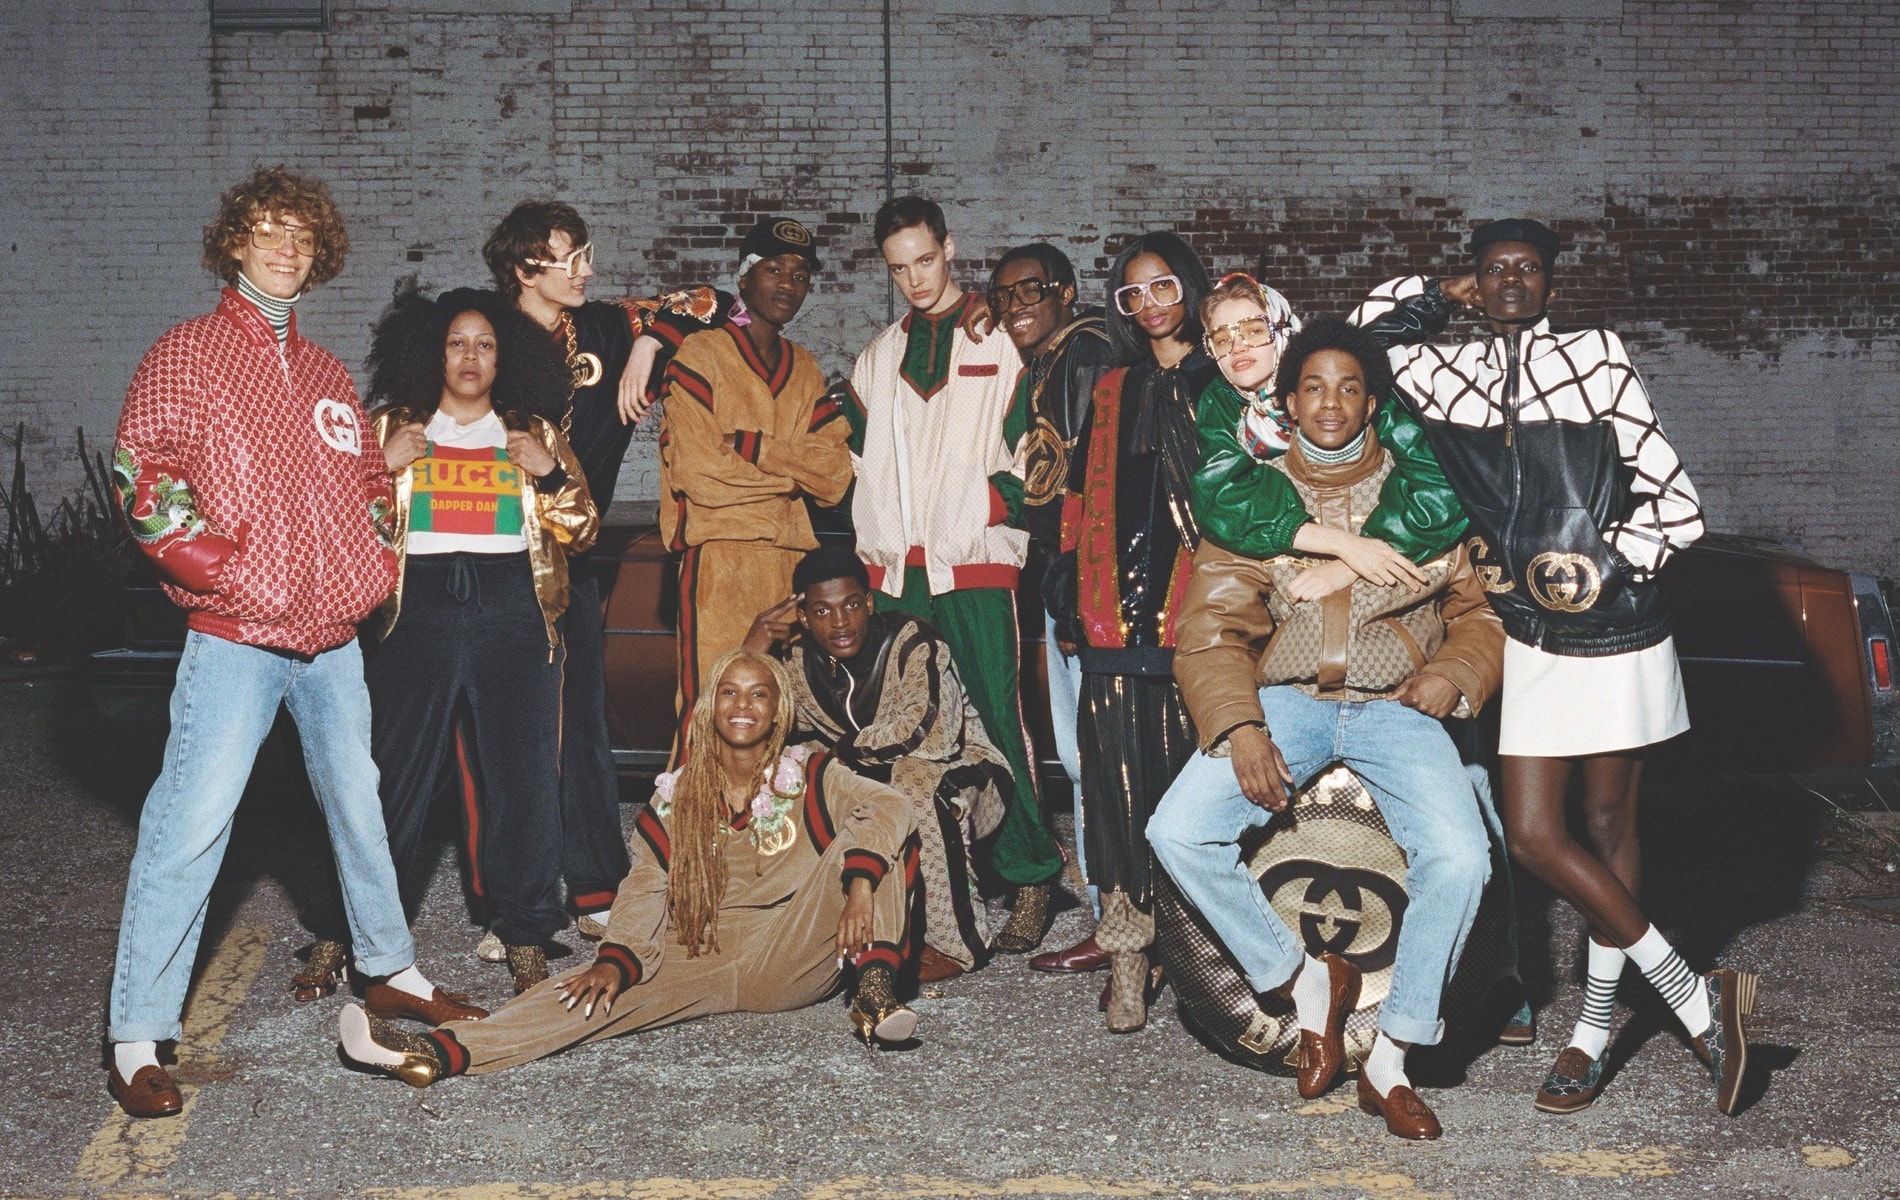 Gucci x Dapper Dan collaboration